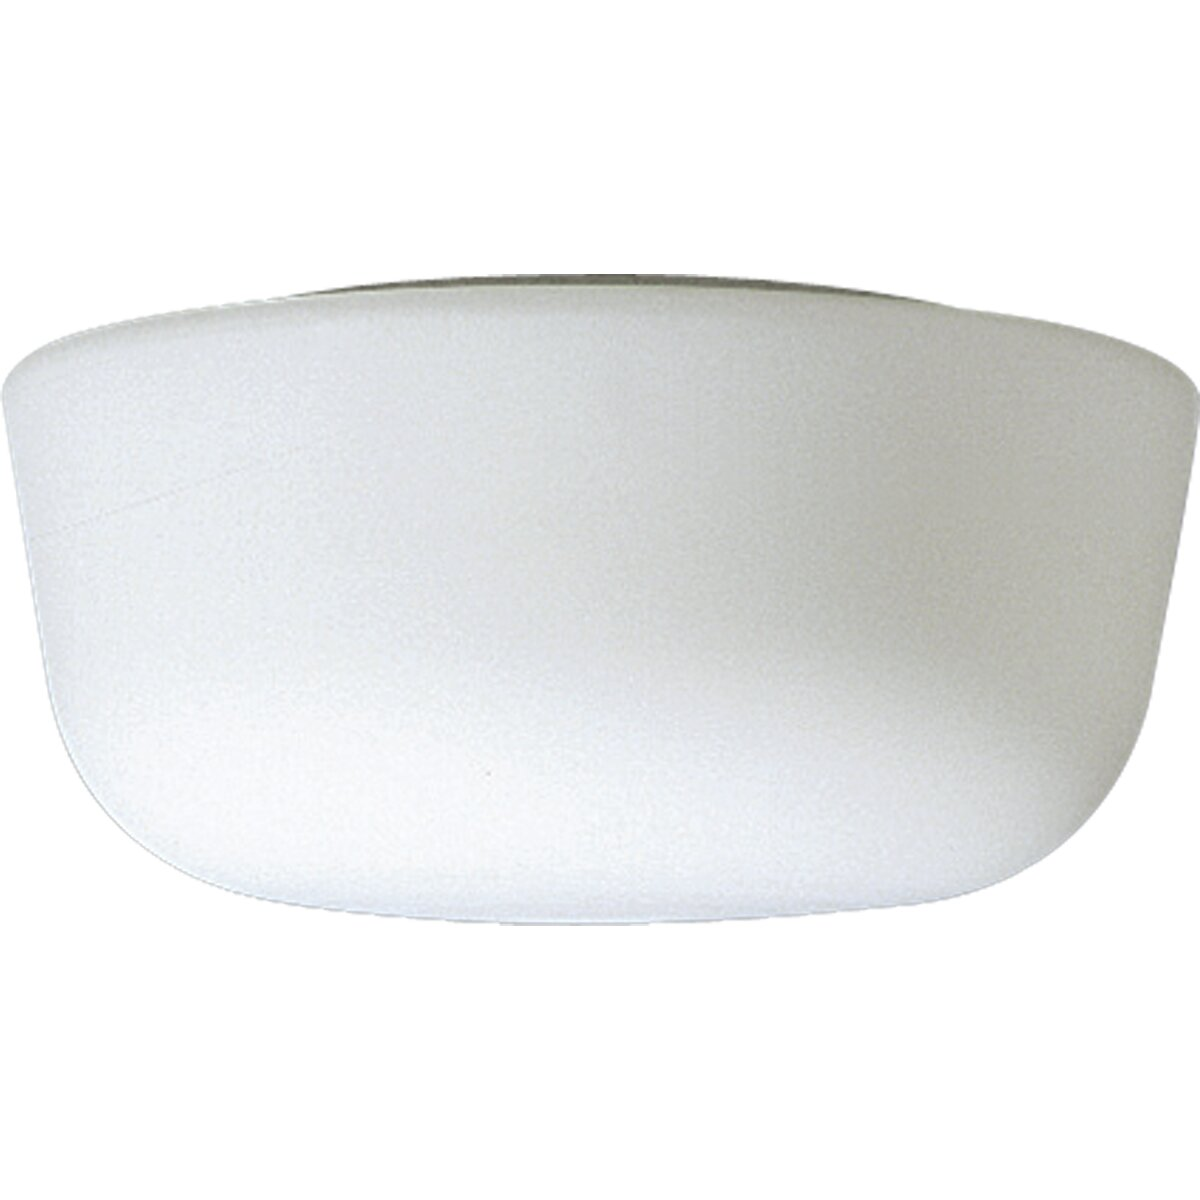 Flush Mount Drum Light: Opal Glass Dome Flush Mount,Lighting